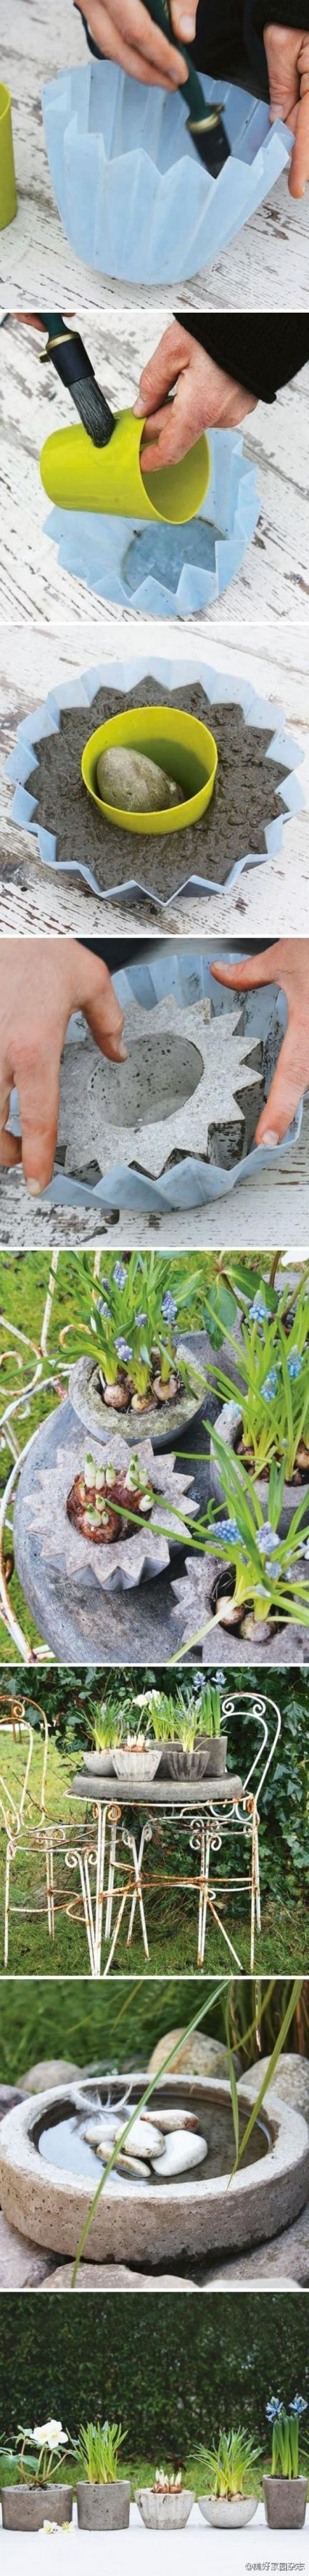 DIY concrete planters, bird bath, candleholders and more by kasrin.knackebrot